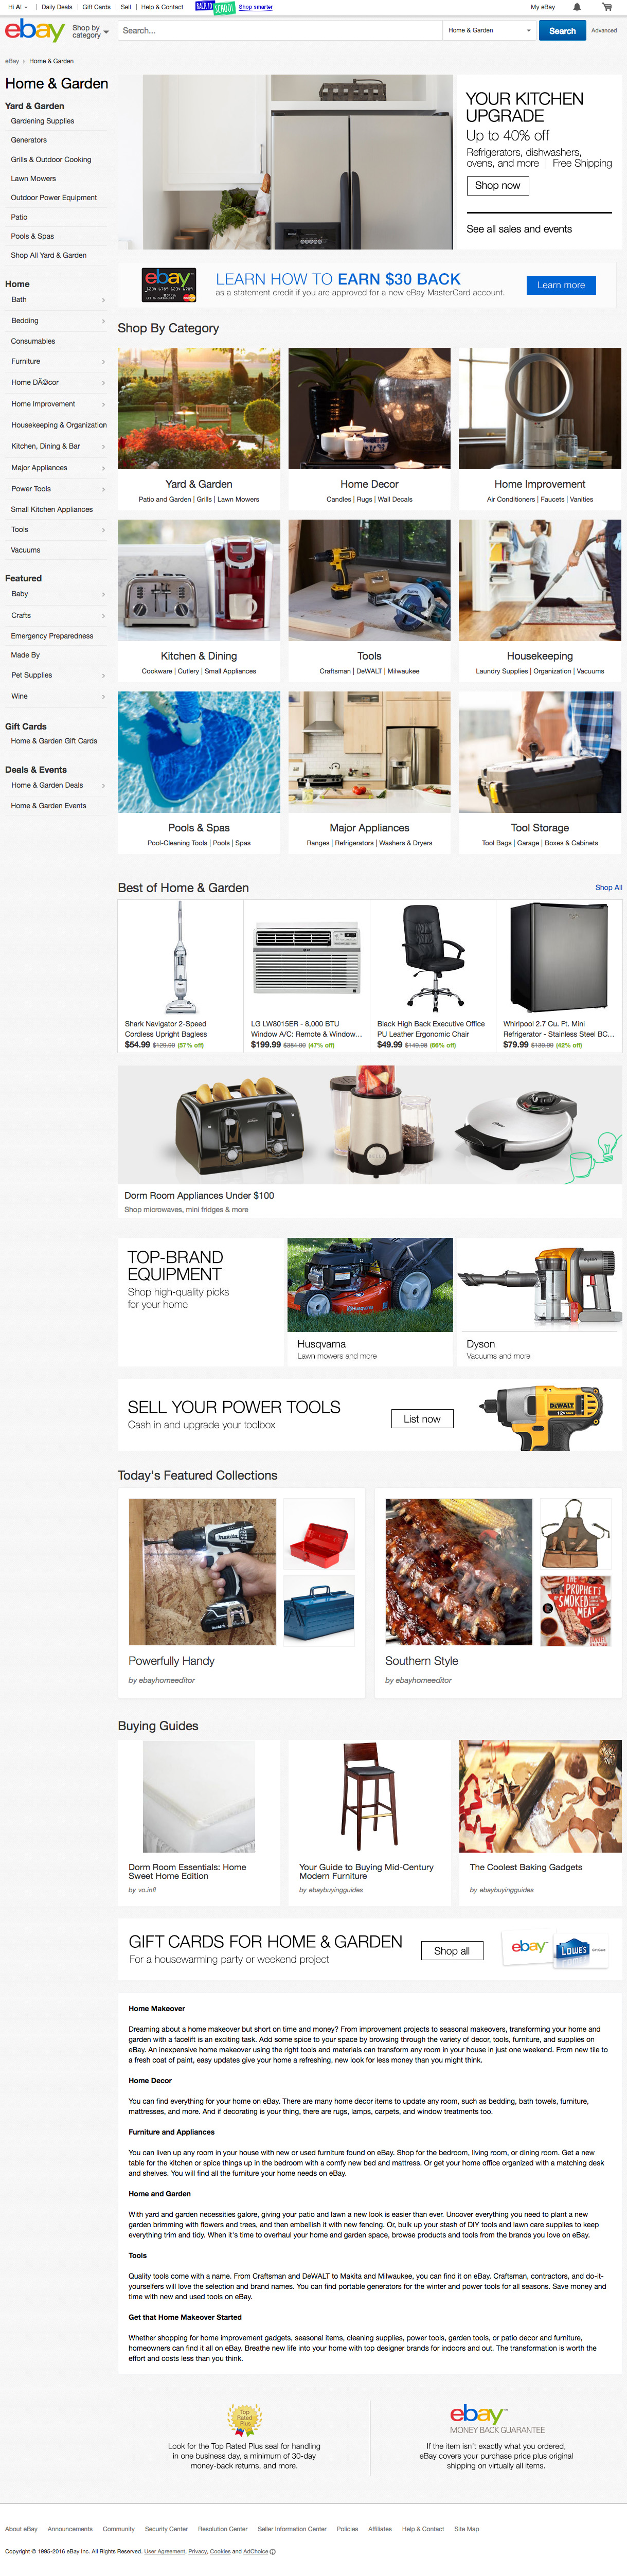 The After (Desktop) - Home & Garden Category Page from Q3 2016